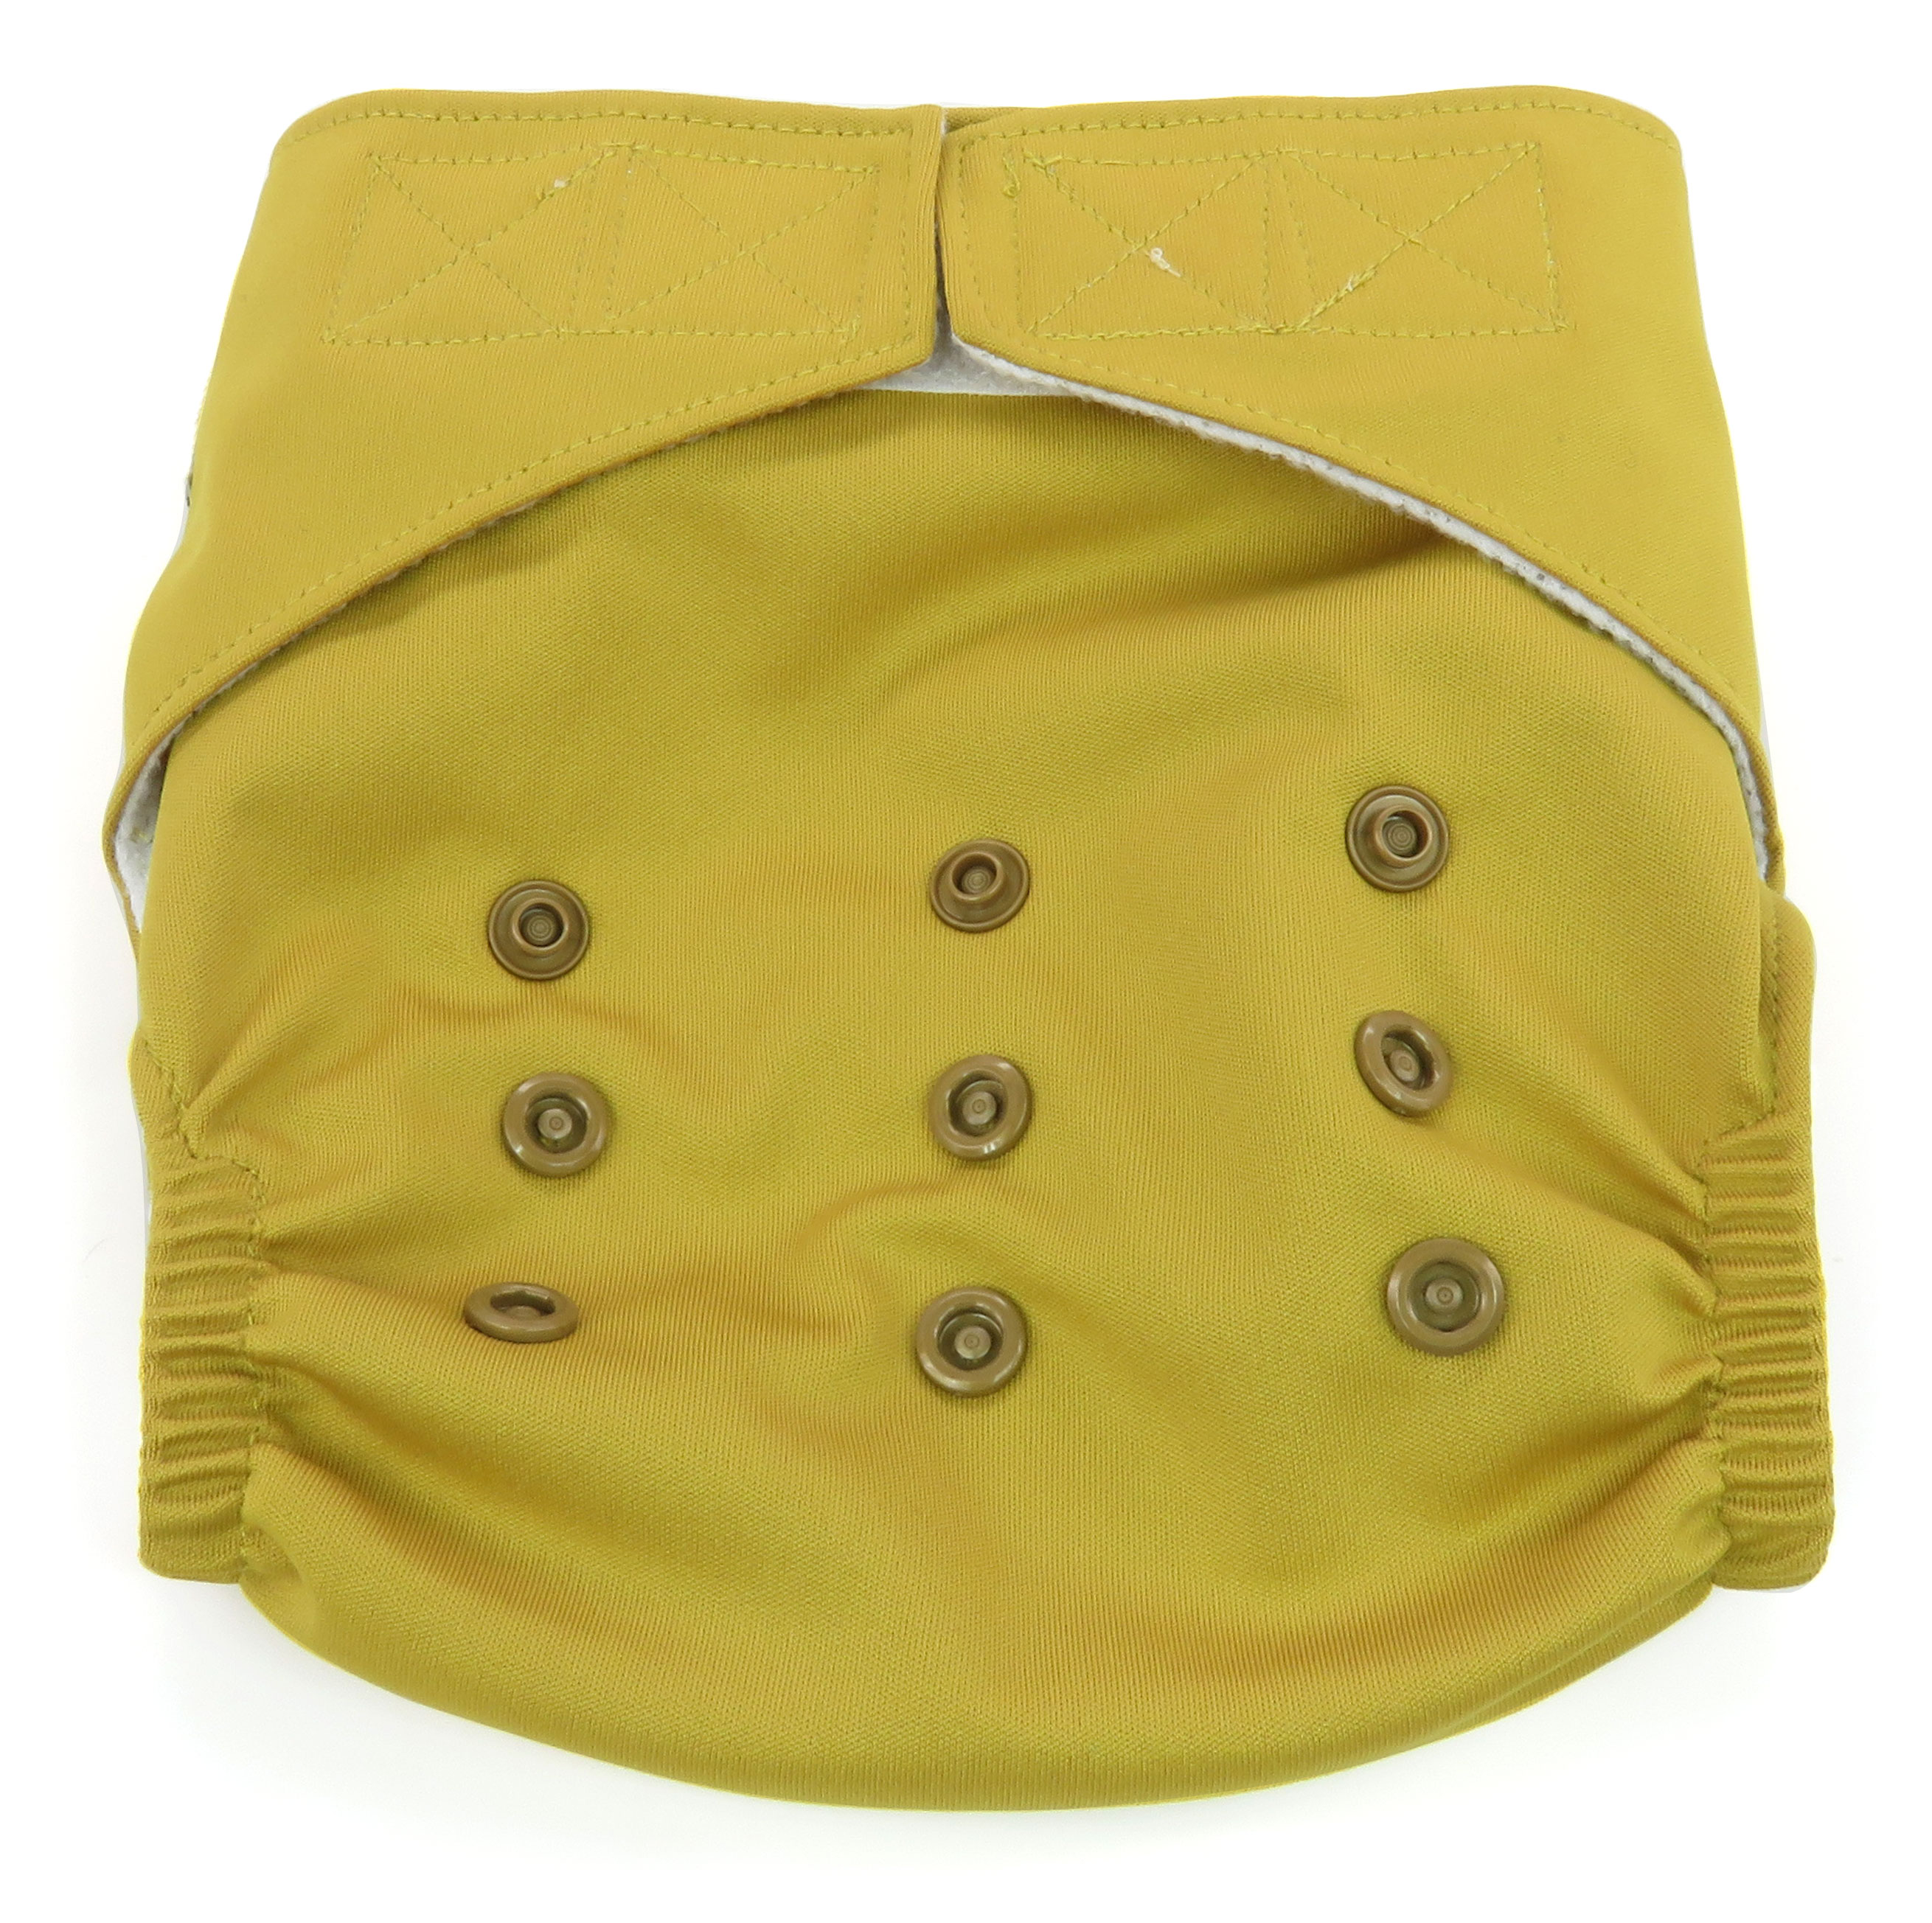 Dandelion Diapers Diaper Cover Shell with Hook and Loop - Compare to Grovia Diaper Covers - One Size - Parsnip